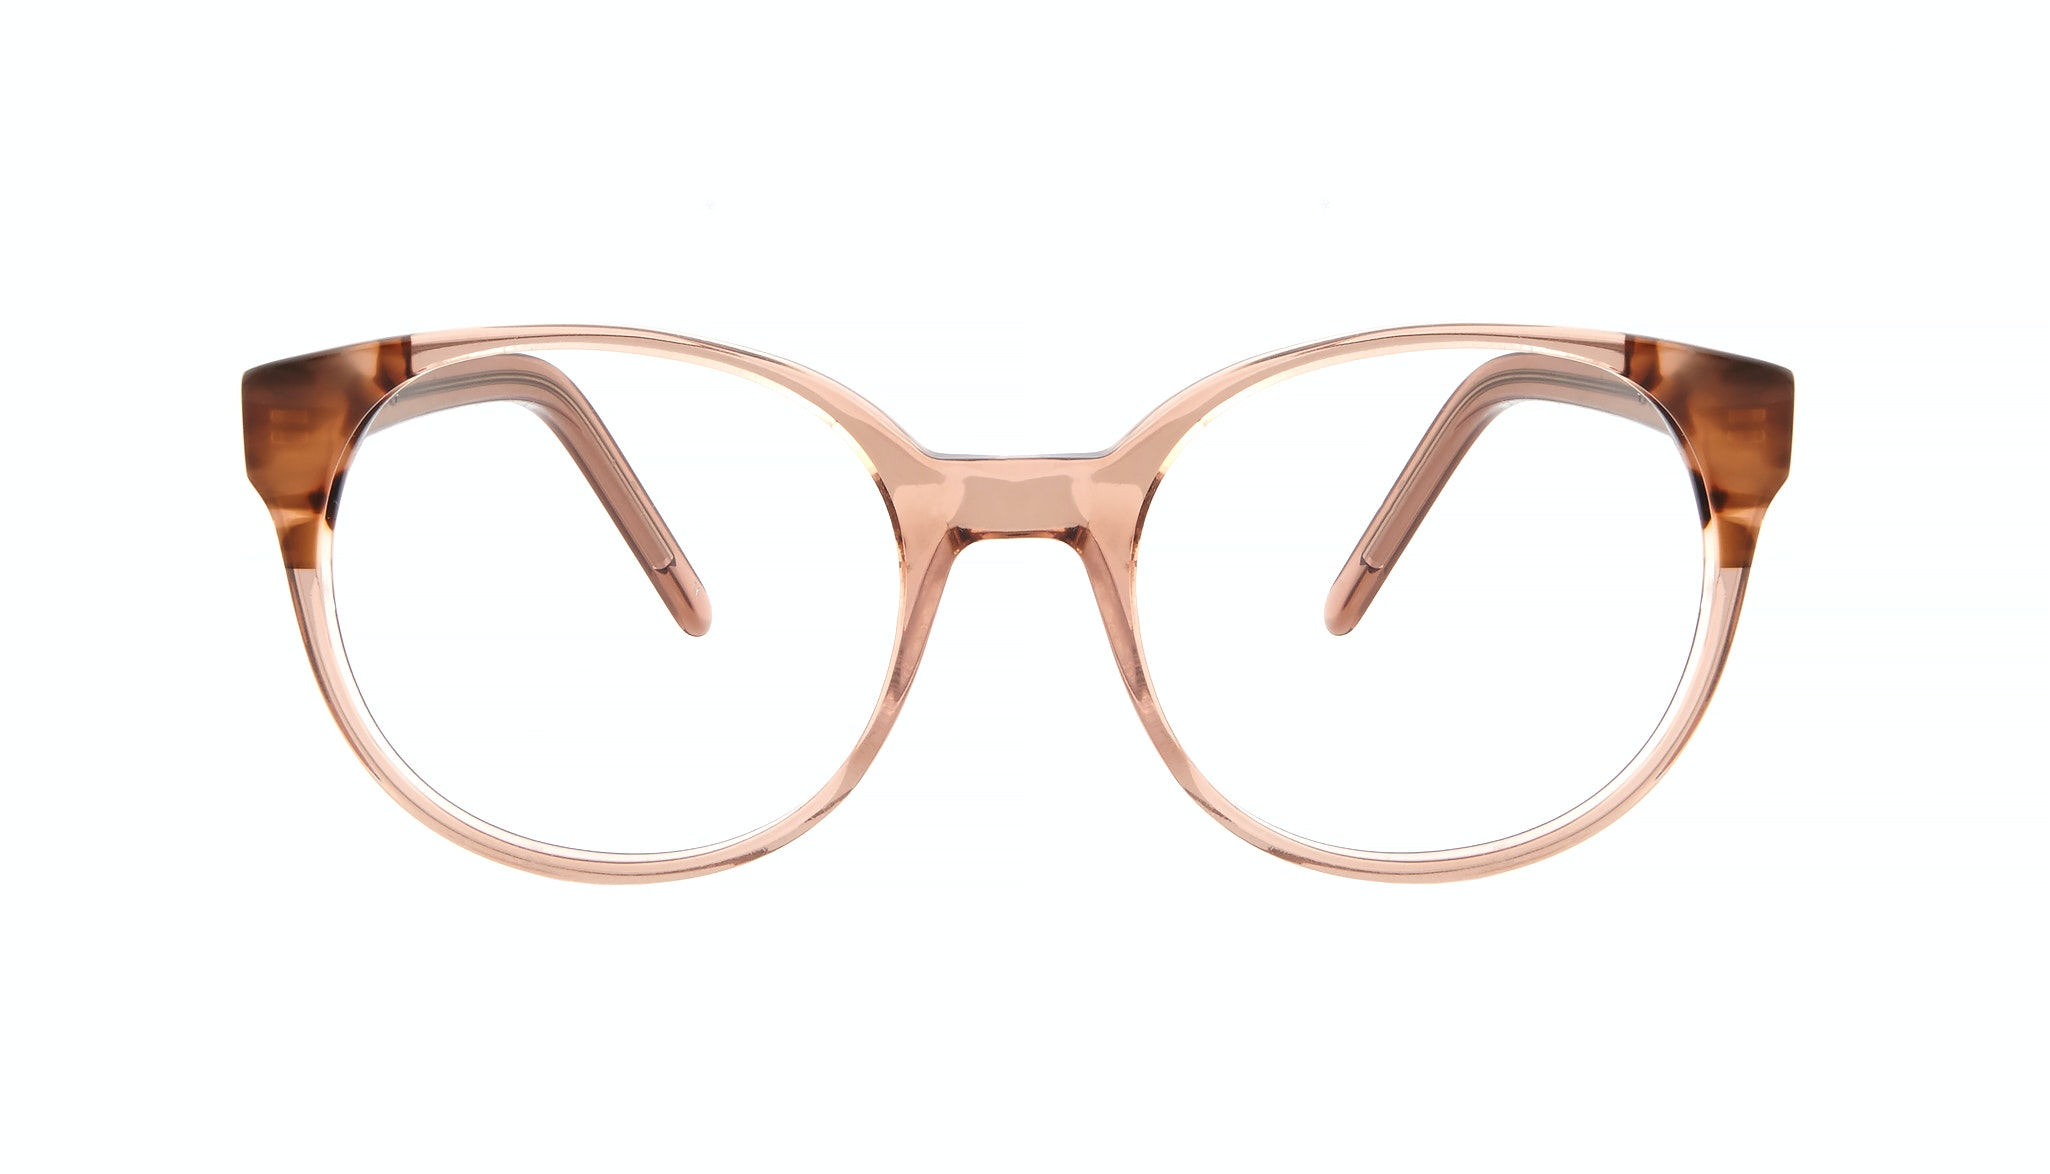 Affordable Fashion Glasses Round Eyeglasses Women Bis Pink Tortoise